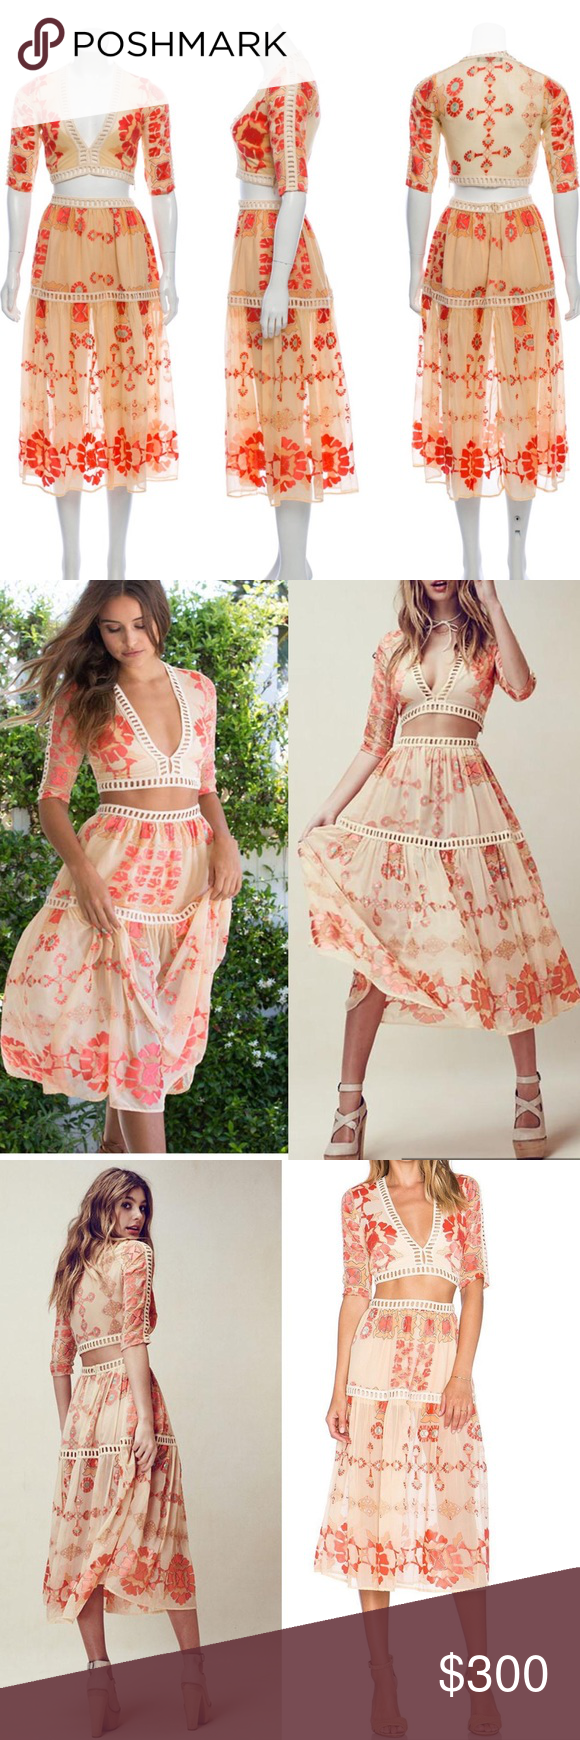 For Love And Lemons Barcelona Crop Top Skirt Set Crop Top Skirt Set Crop Top Skirt Skirt Set